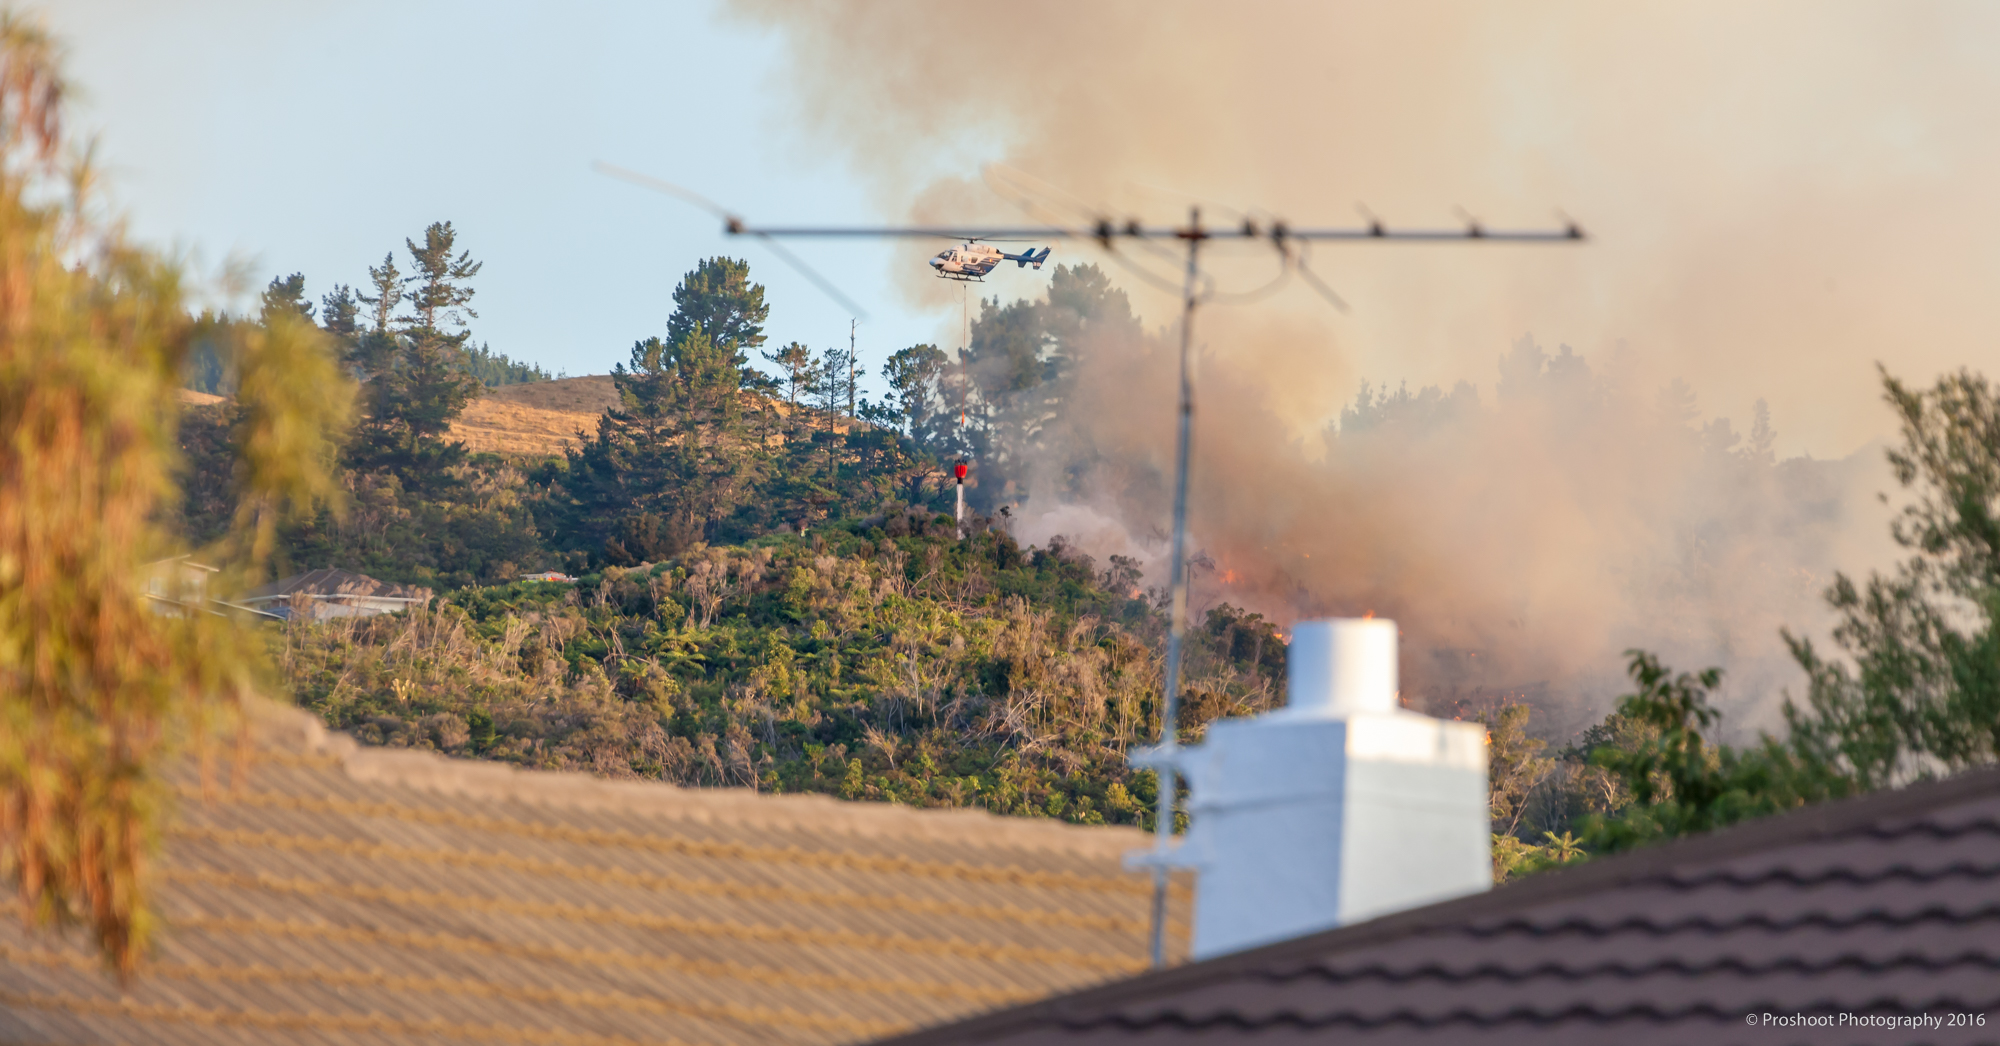 Upper Hutt Scrub Fire Images 5594